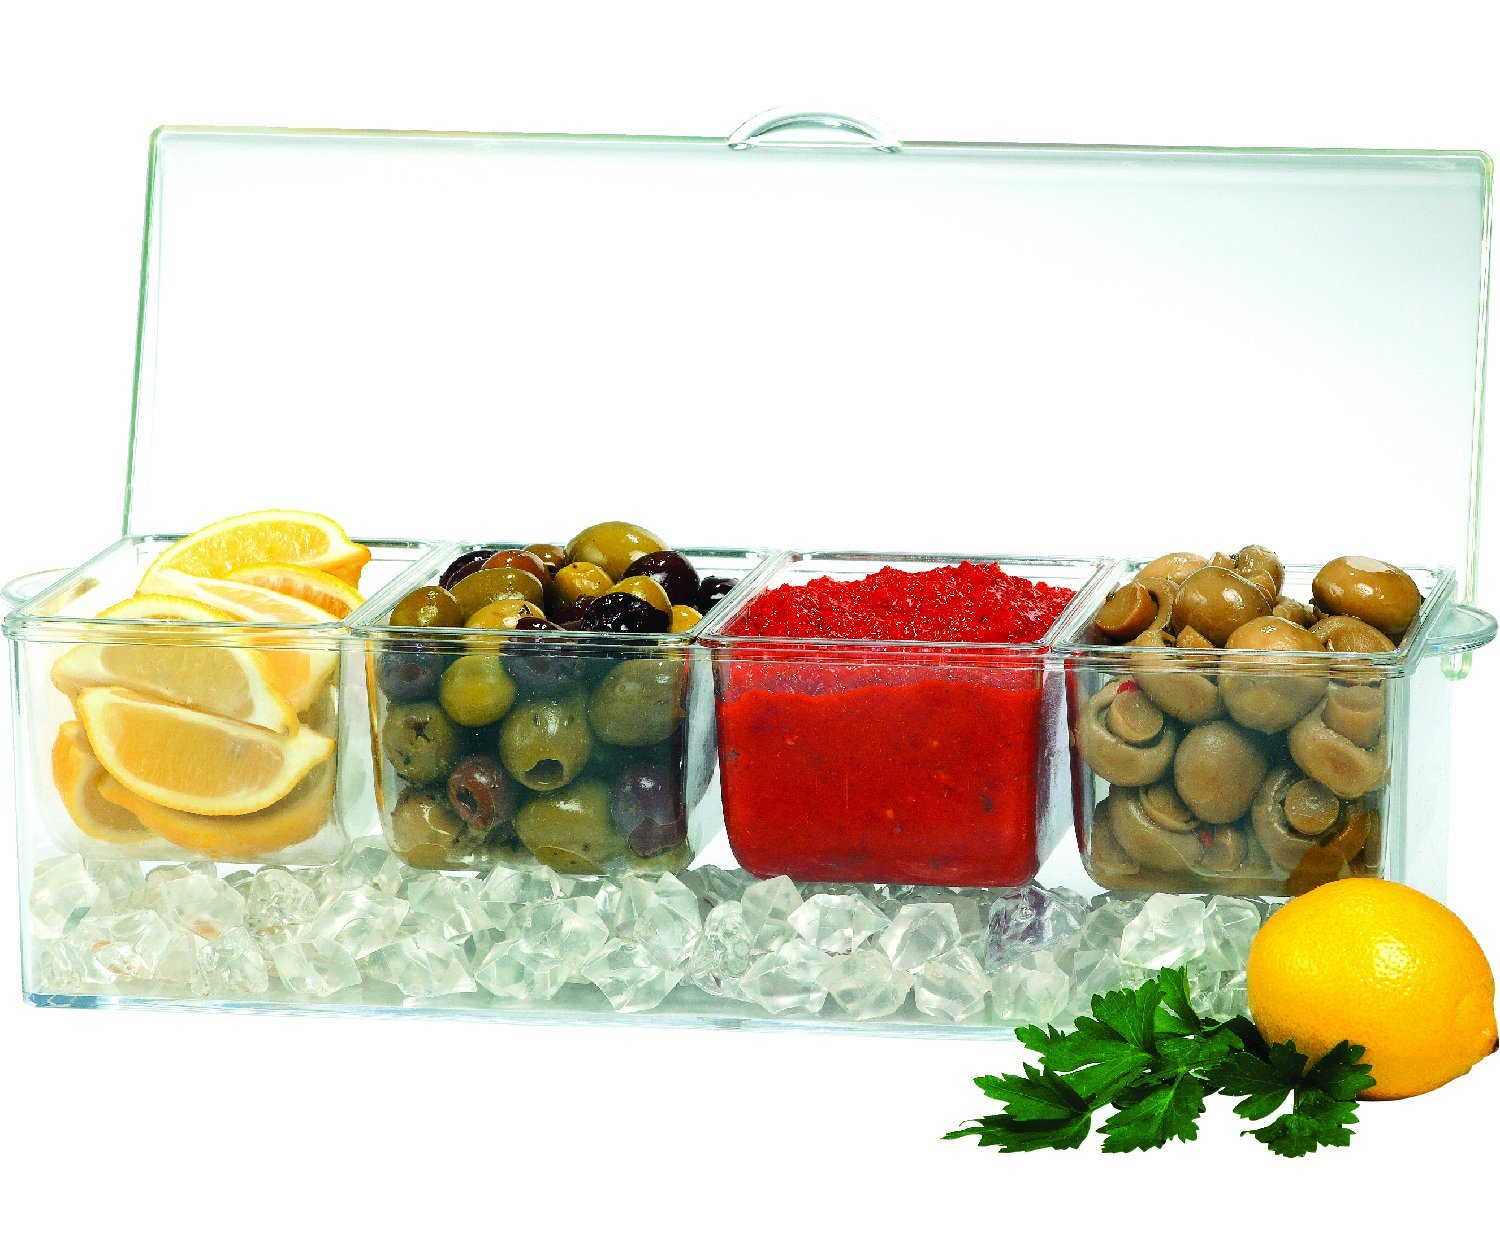 Jumbl Condiments Caddy Chilled Server Tray On Ice. 4 Big Sections Organize & Dispense Condiments With Ice Compartment Underneath. Container Made Of Shatterproof Acrylic Plastic. JUM-029